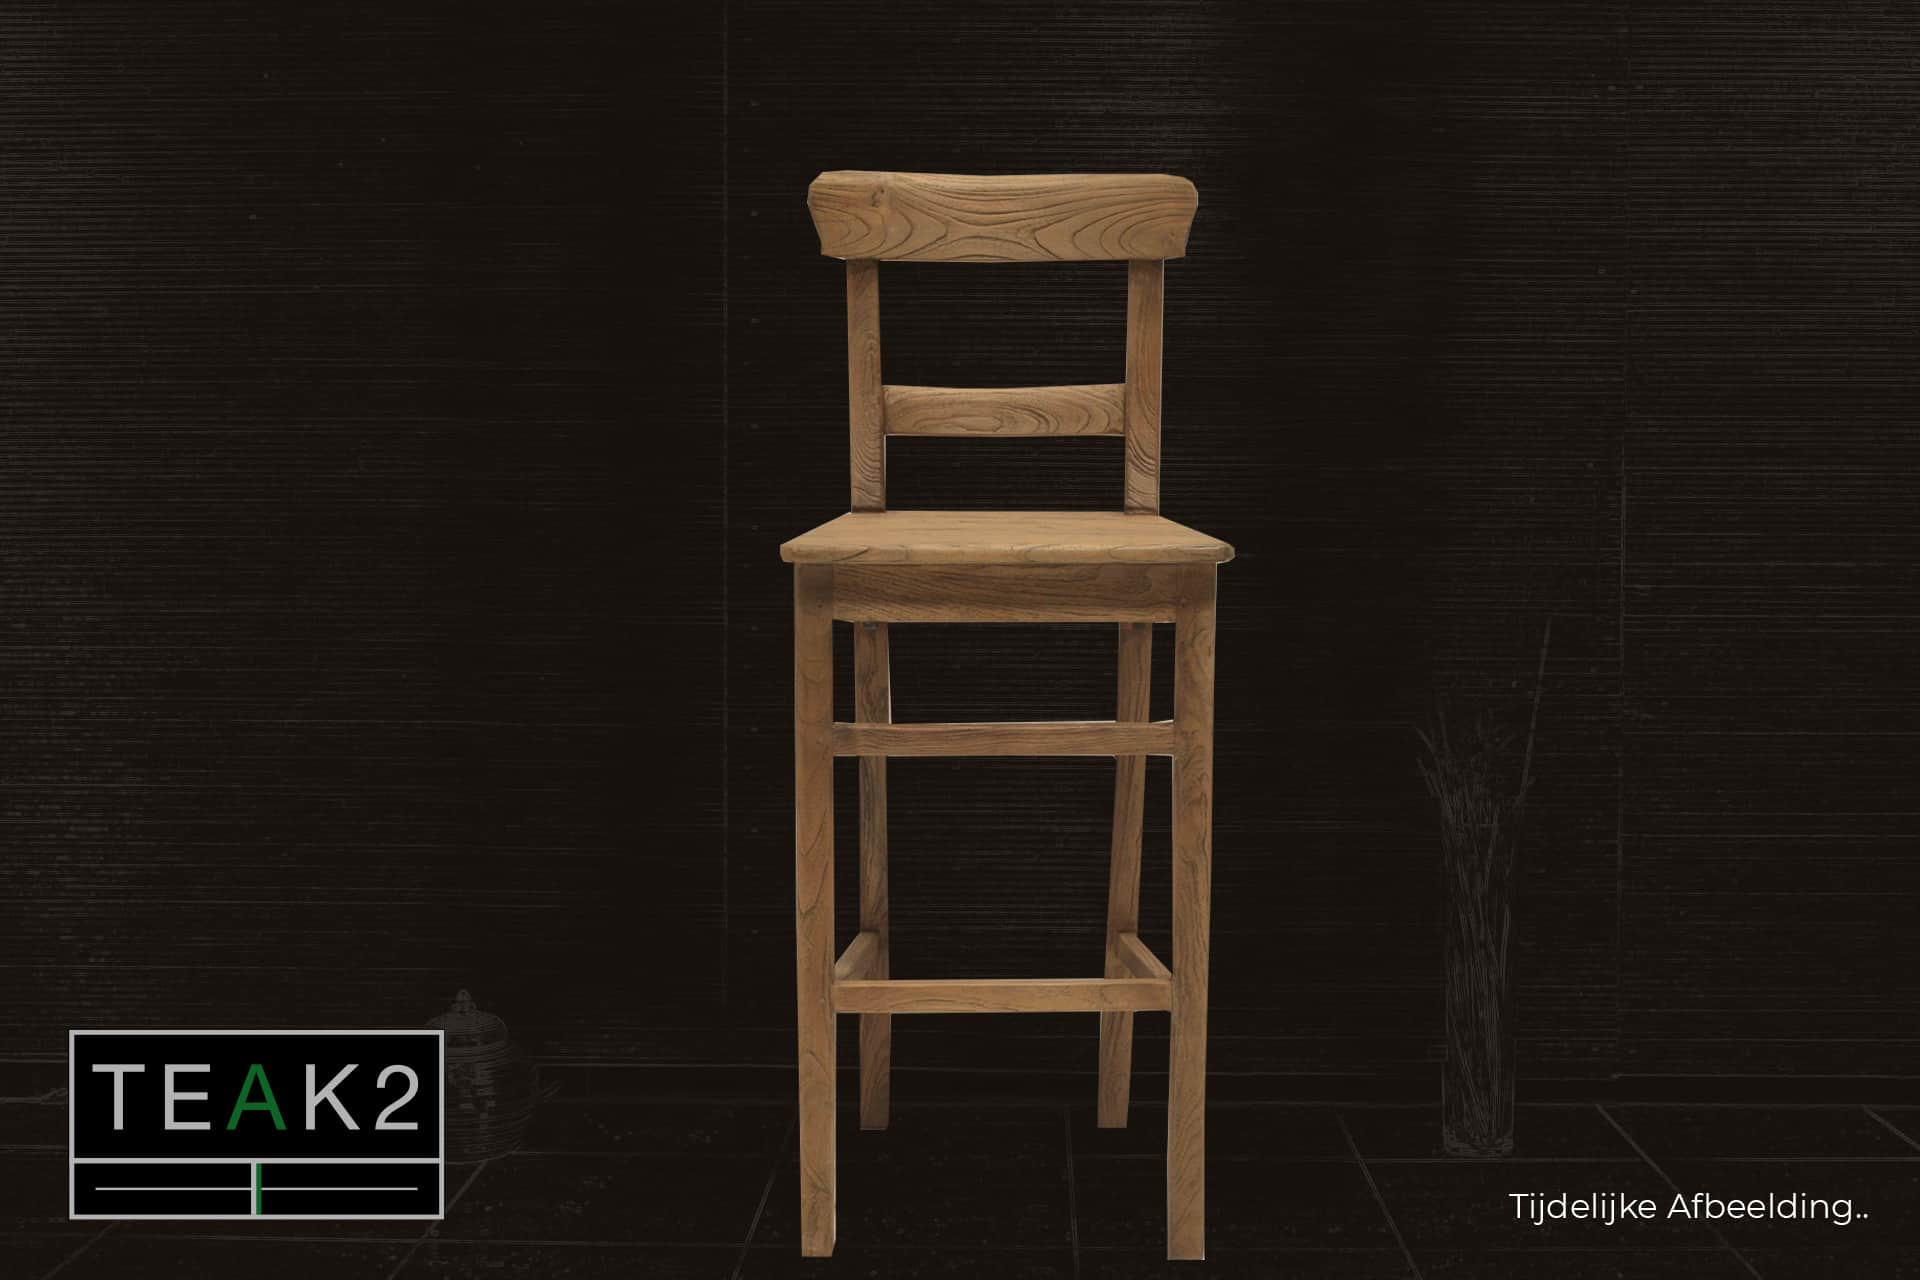 Bar stool Teak Kursi Old | rural teak bar stool in brushed old teak. Teak barstool with rustic look and comfortable seating - TEAK2.